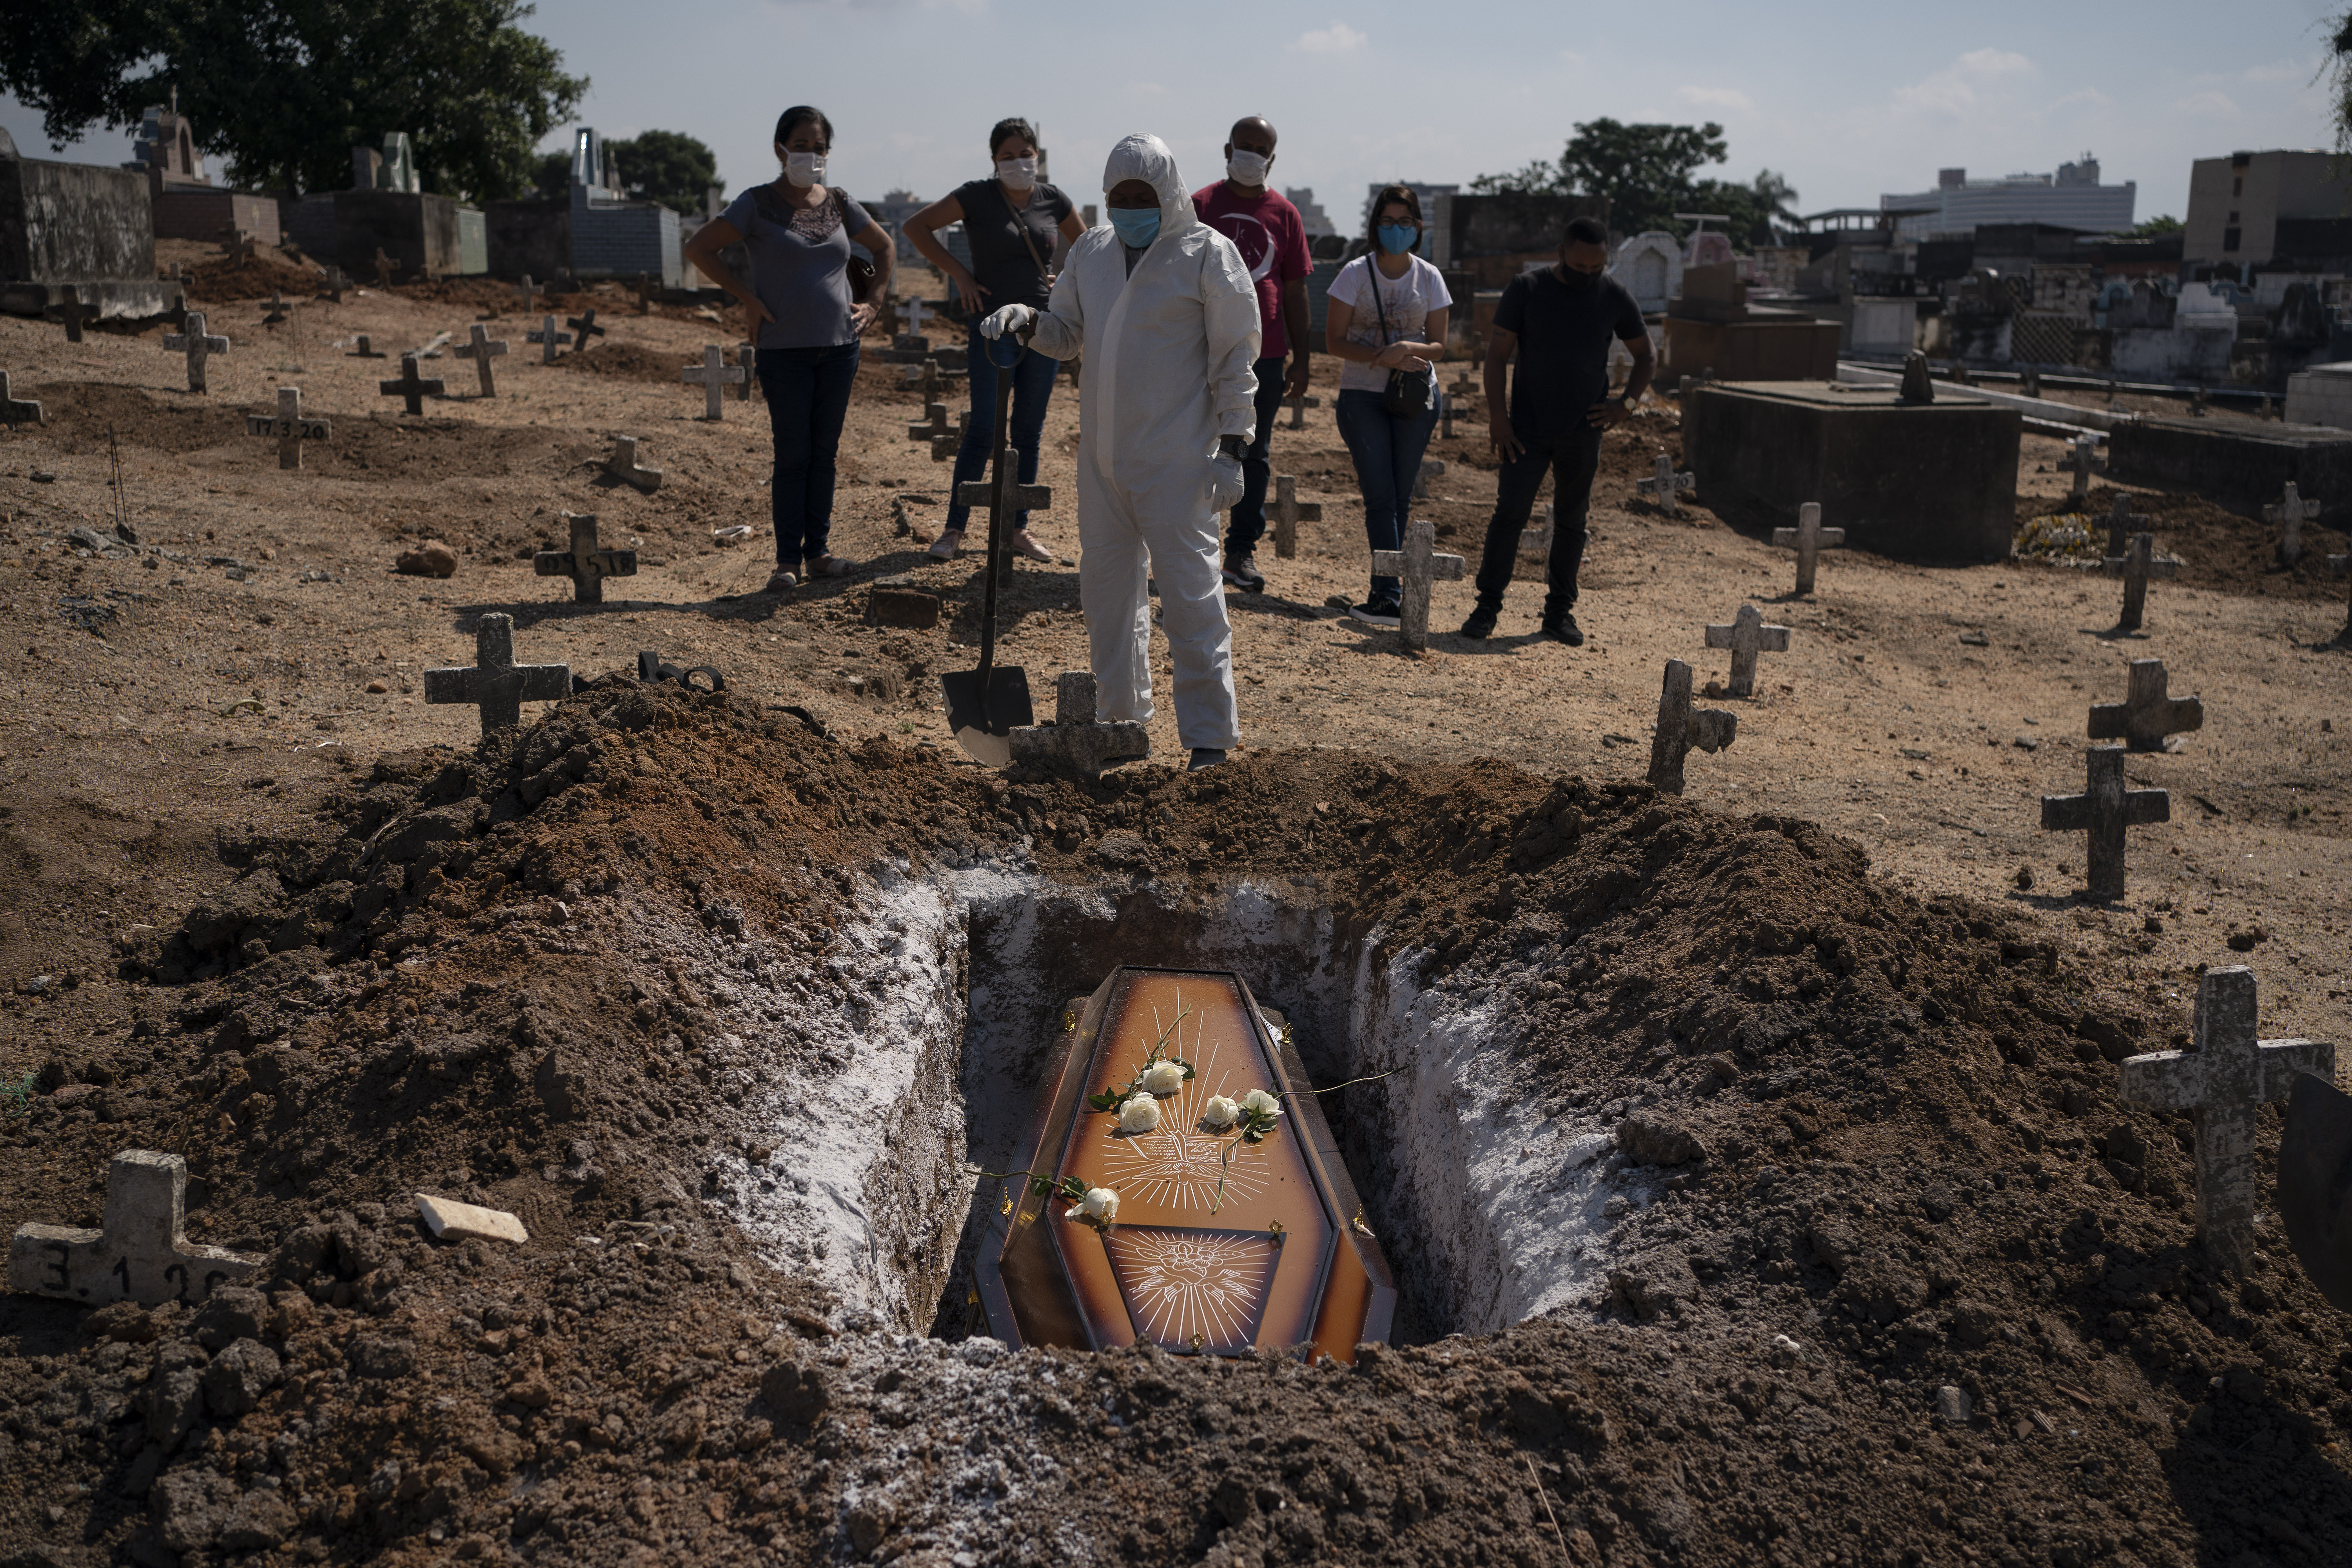 A cemetery worker stands before the coffin containing the remains of Edenir Rezende Bessa as relatives attend her burial in Rio de Janeiro on April 22, 2020.